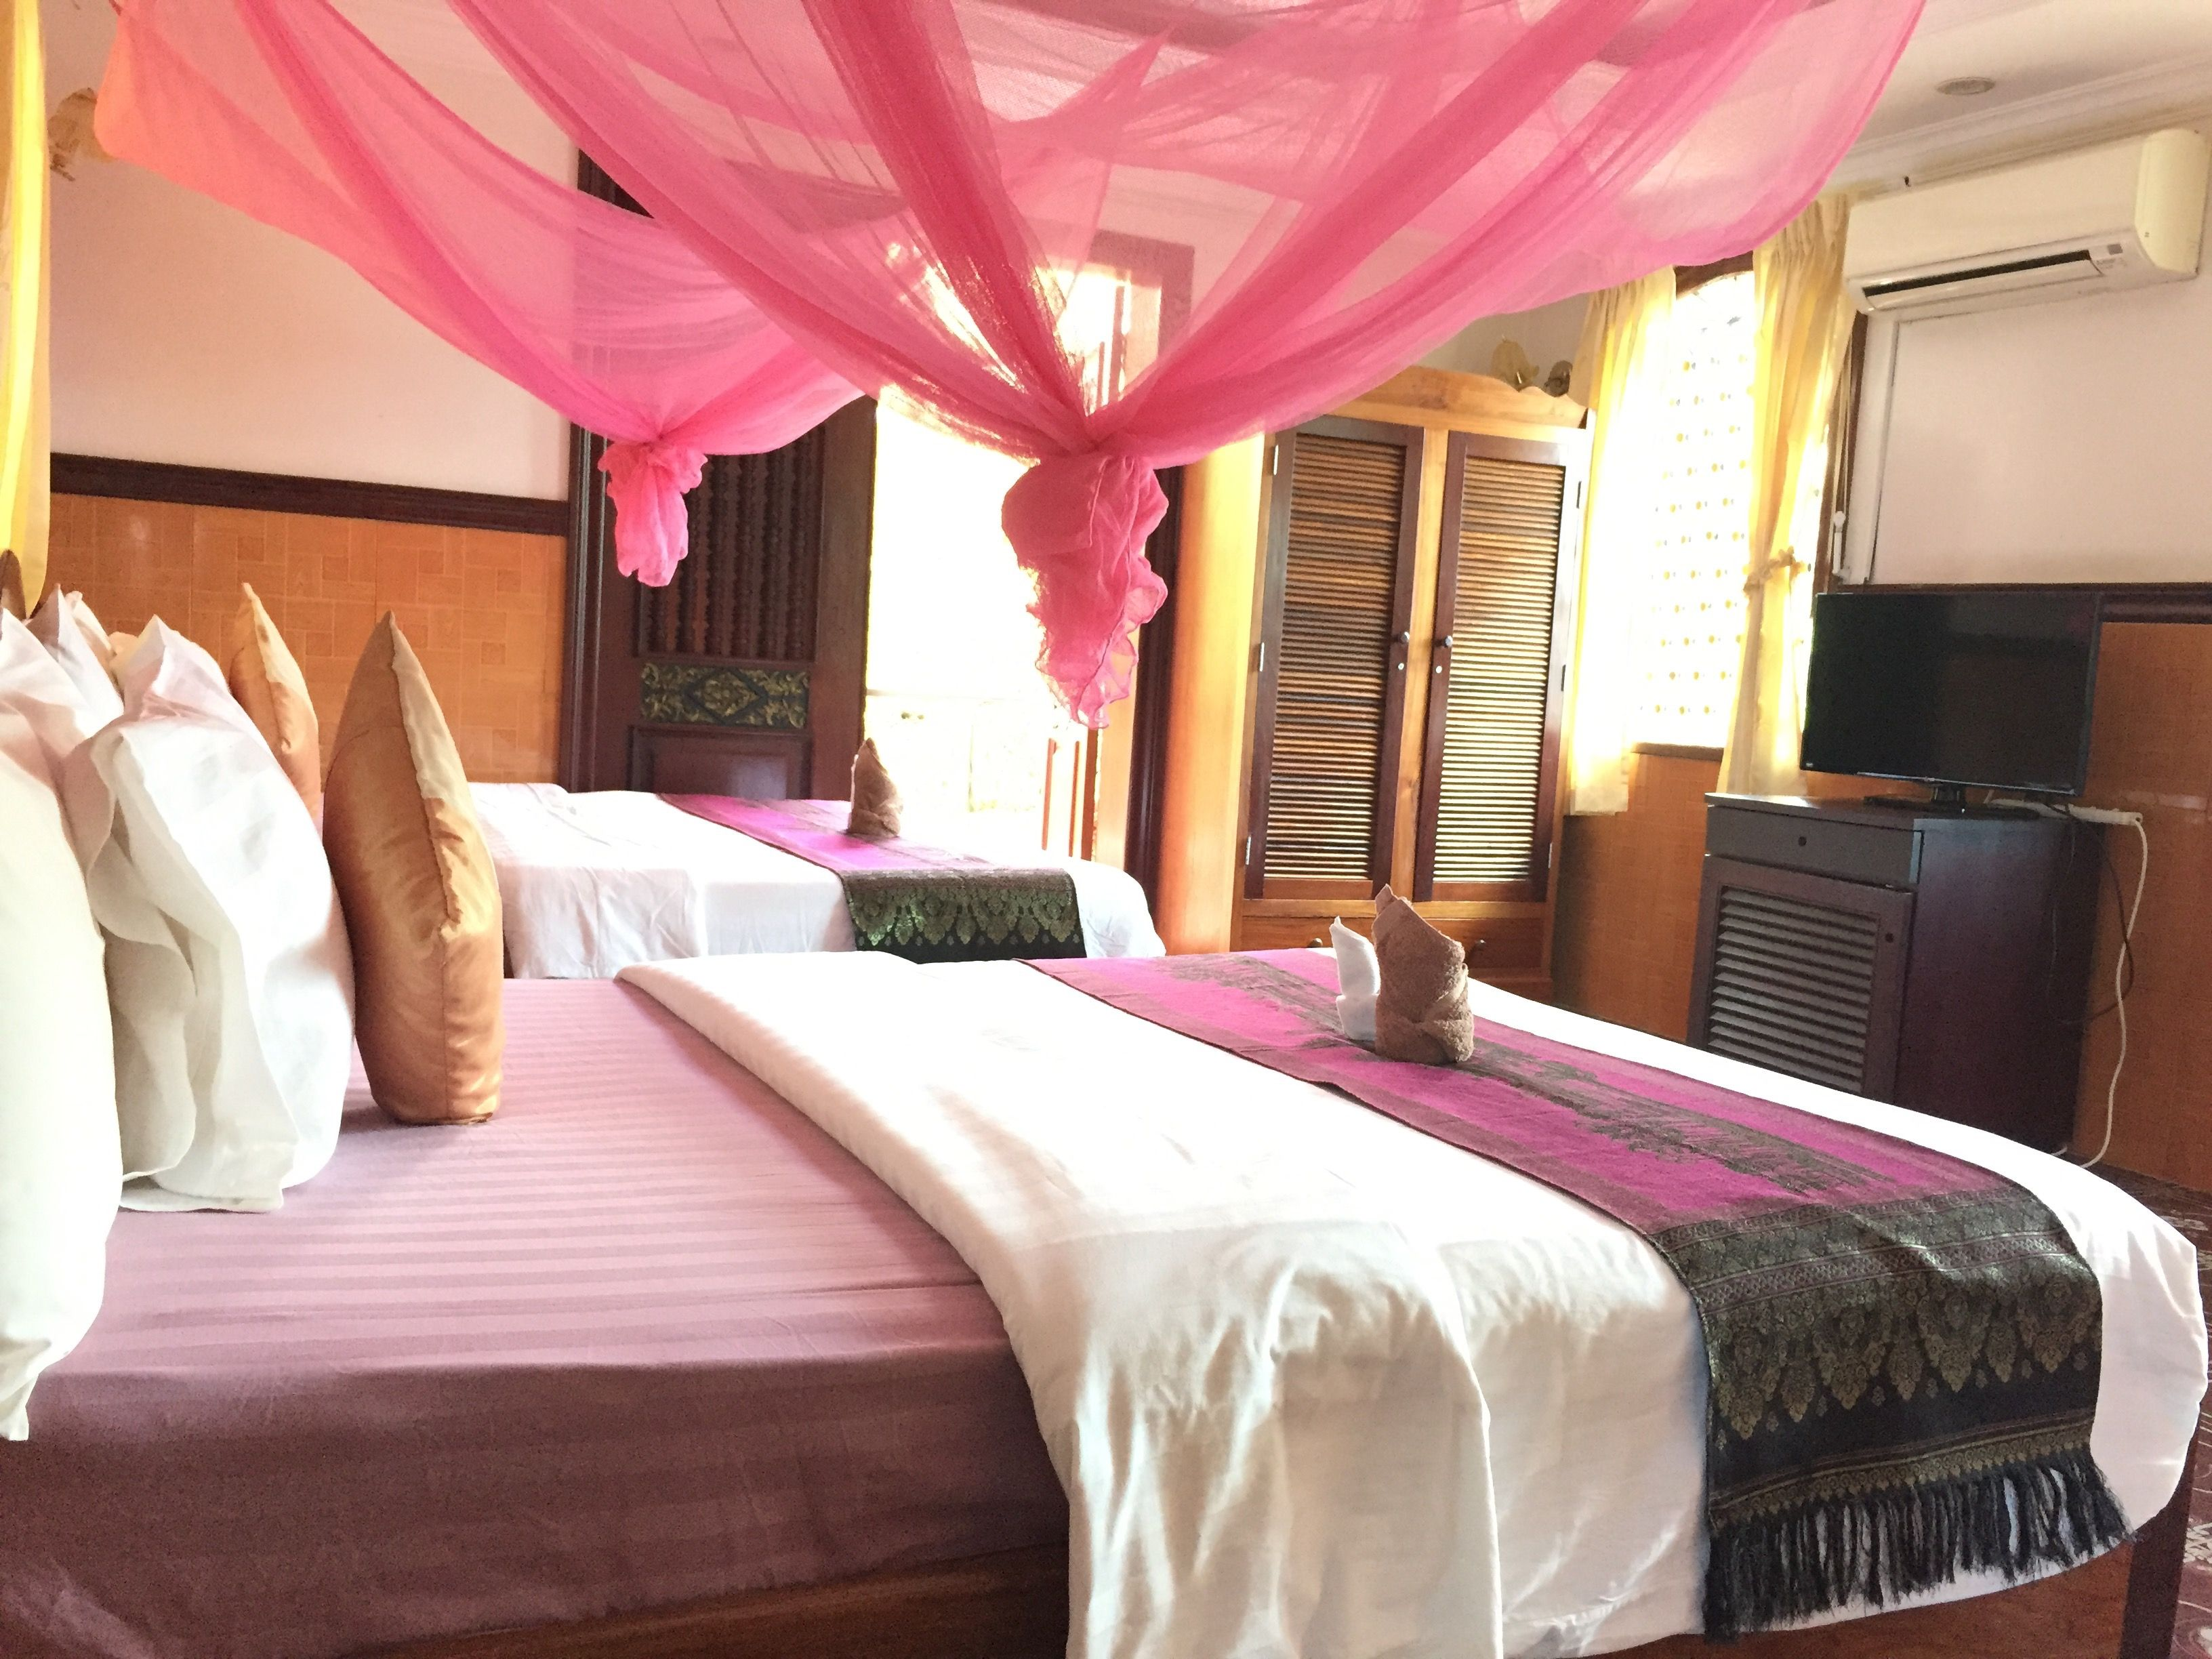 Luxury Twin sleeps 4 people at River Village Manor Guesthouse in Siem Reap